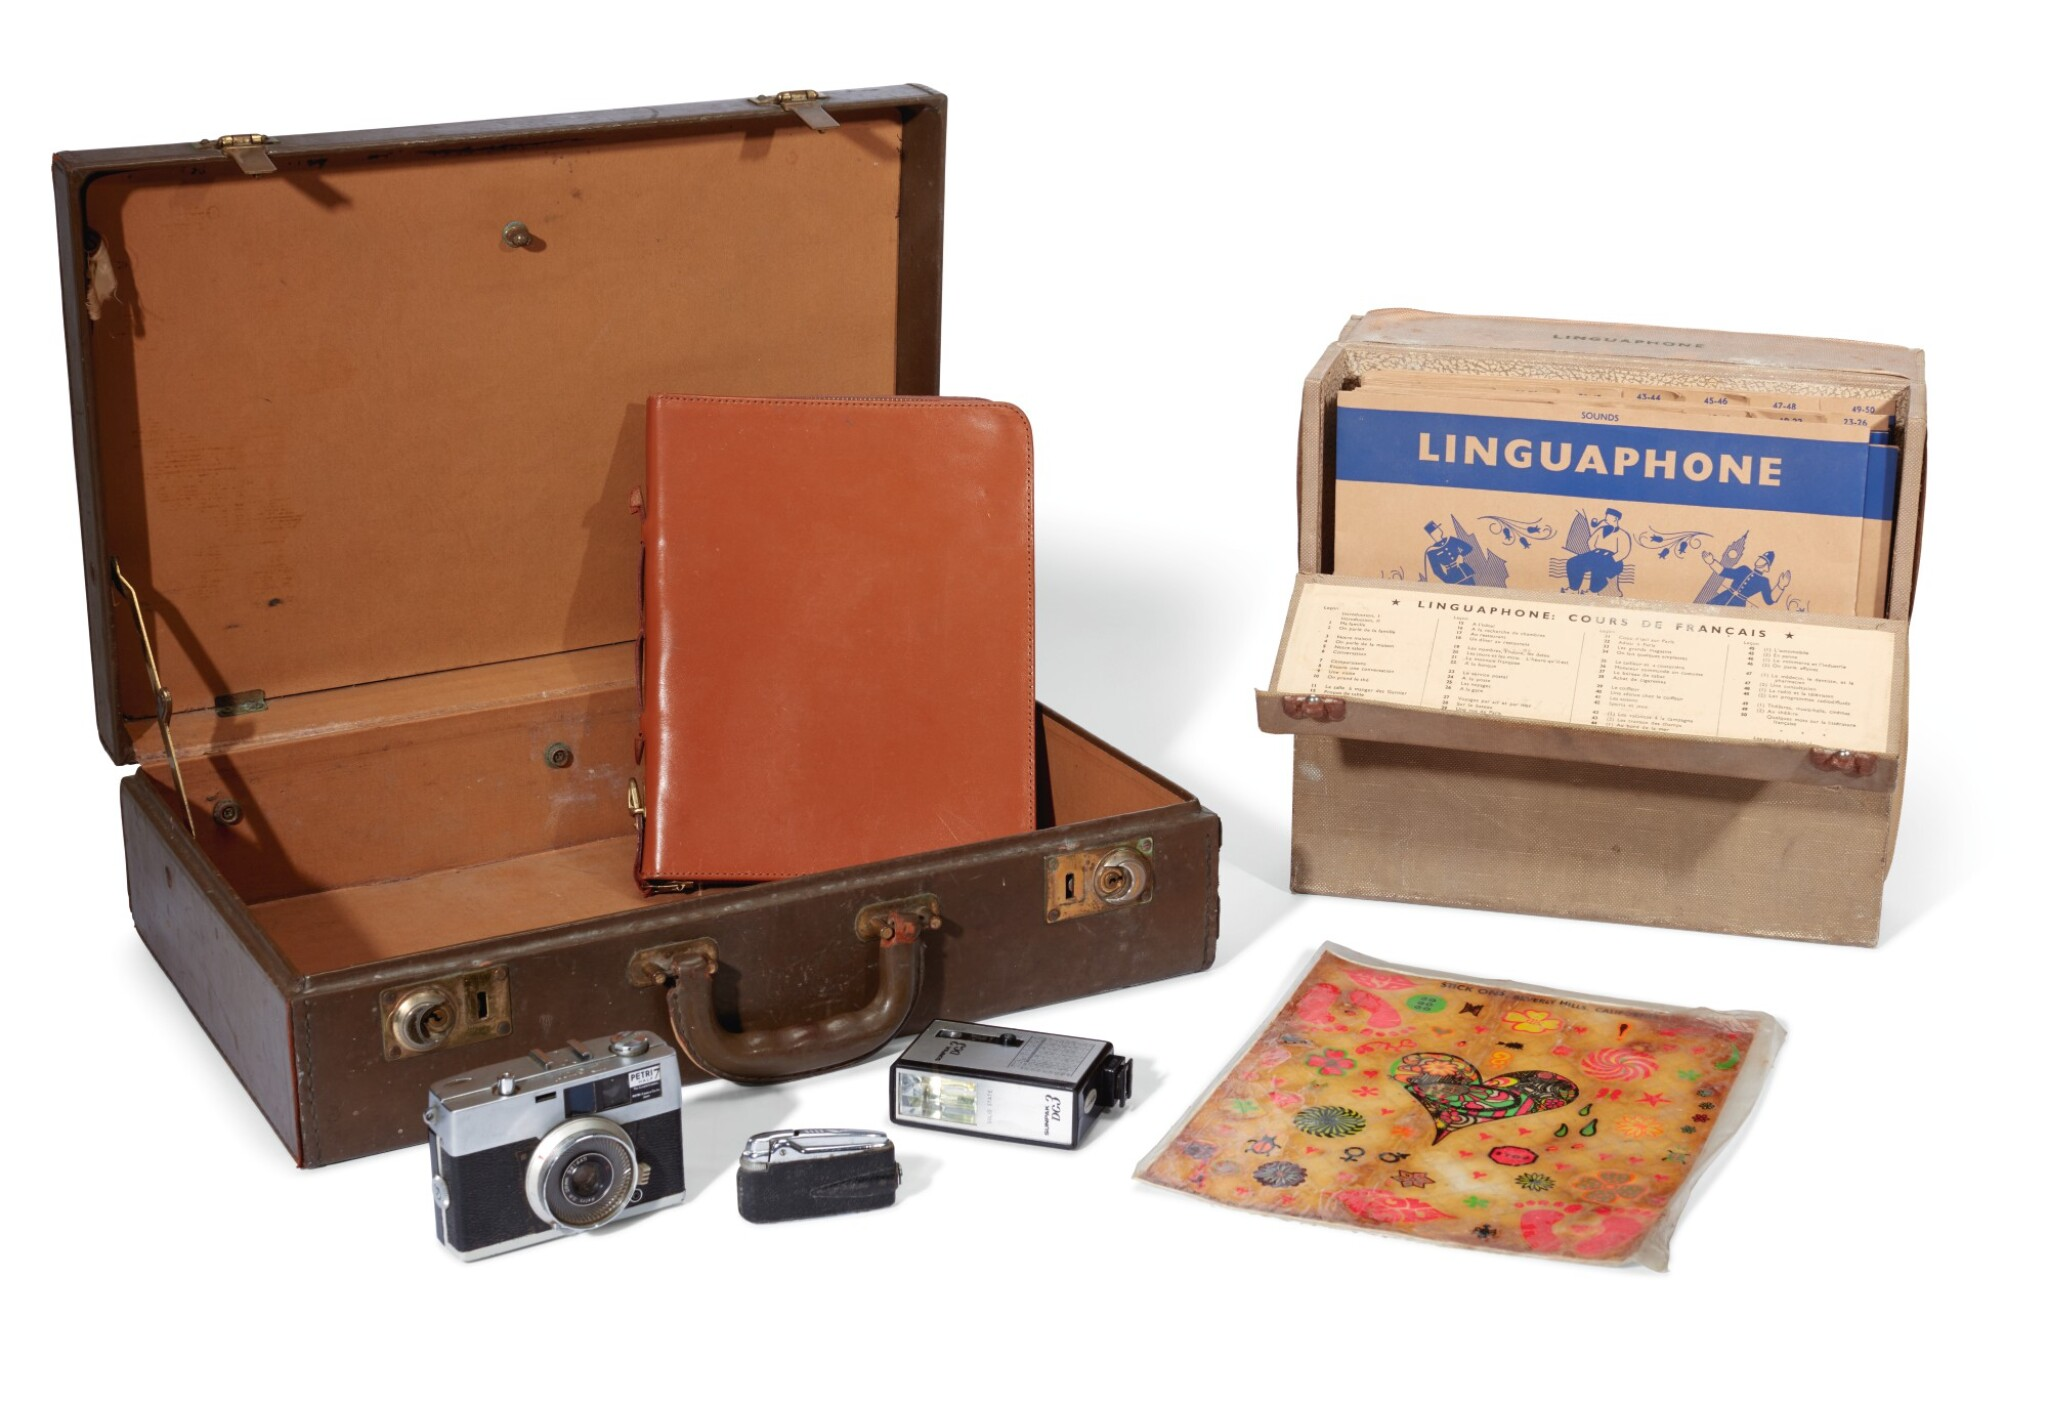 THE BEATLES   Ronson cigarette lighter; Petri Half 7 Camera & Solid State DC3 Flash; leather writing case & small case